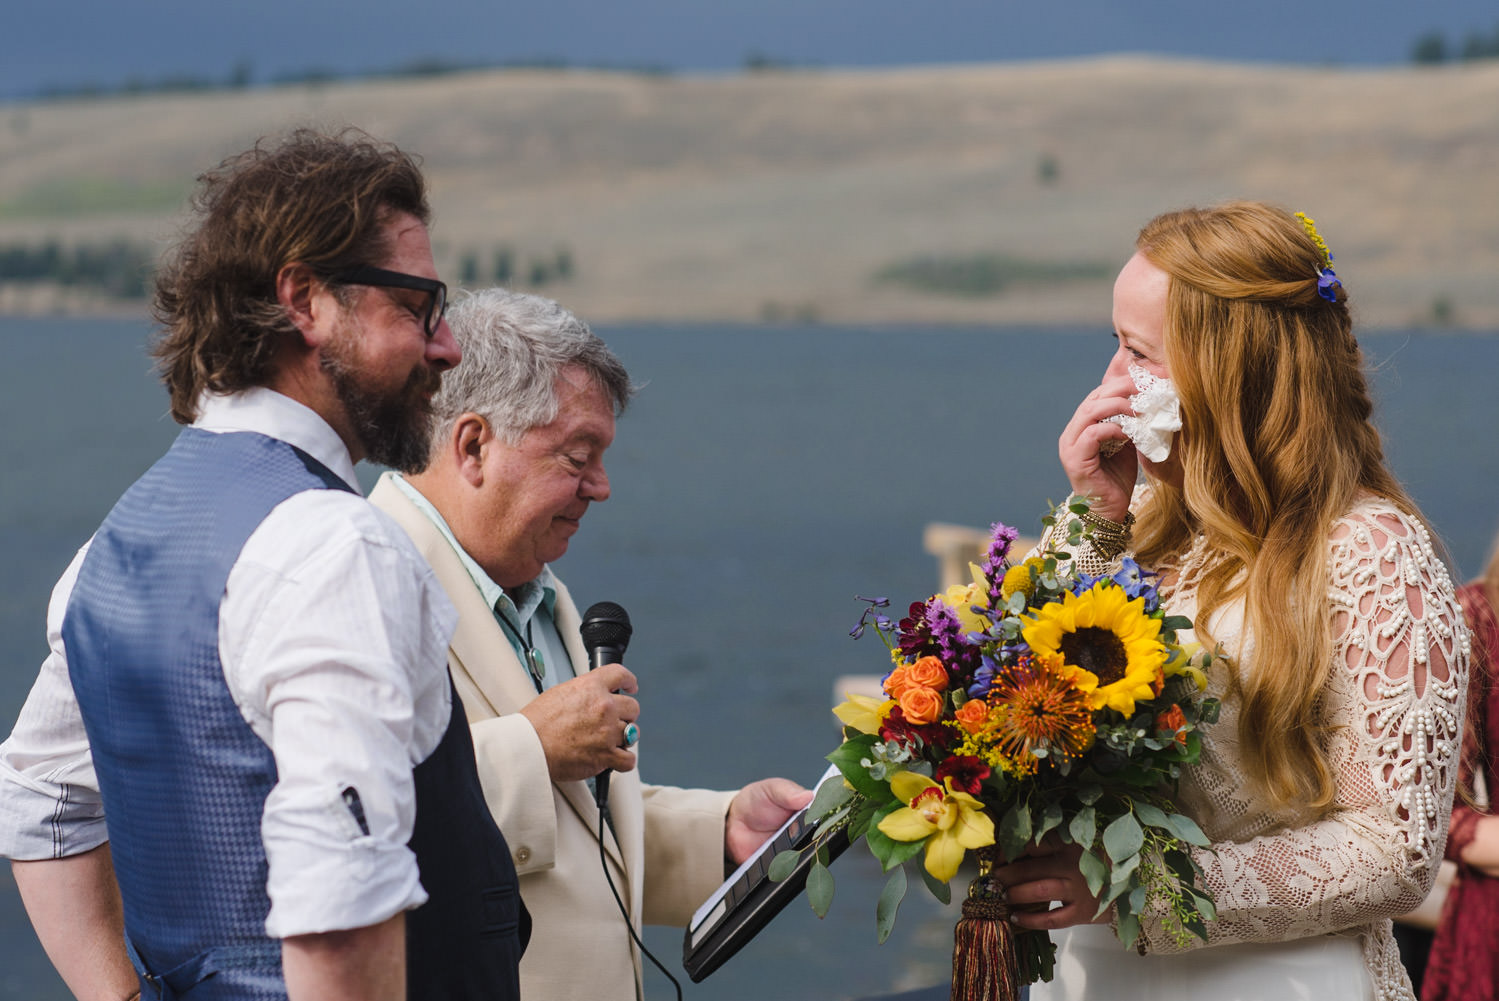 West Yellowstone Wedding bride and groom saying vows photo